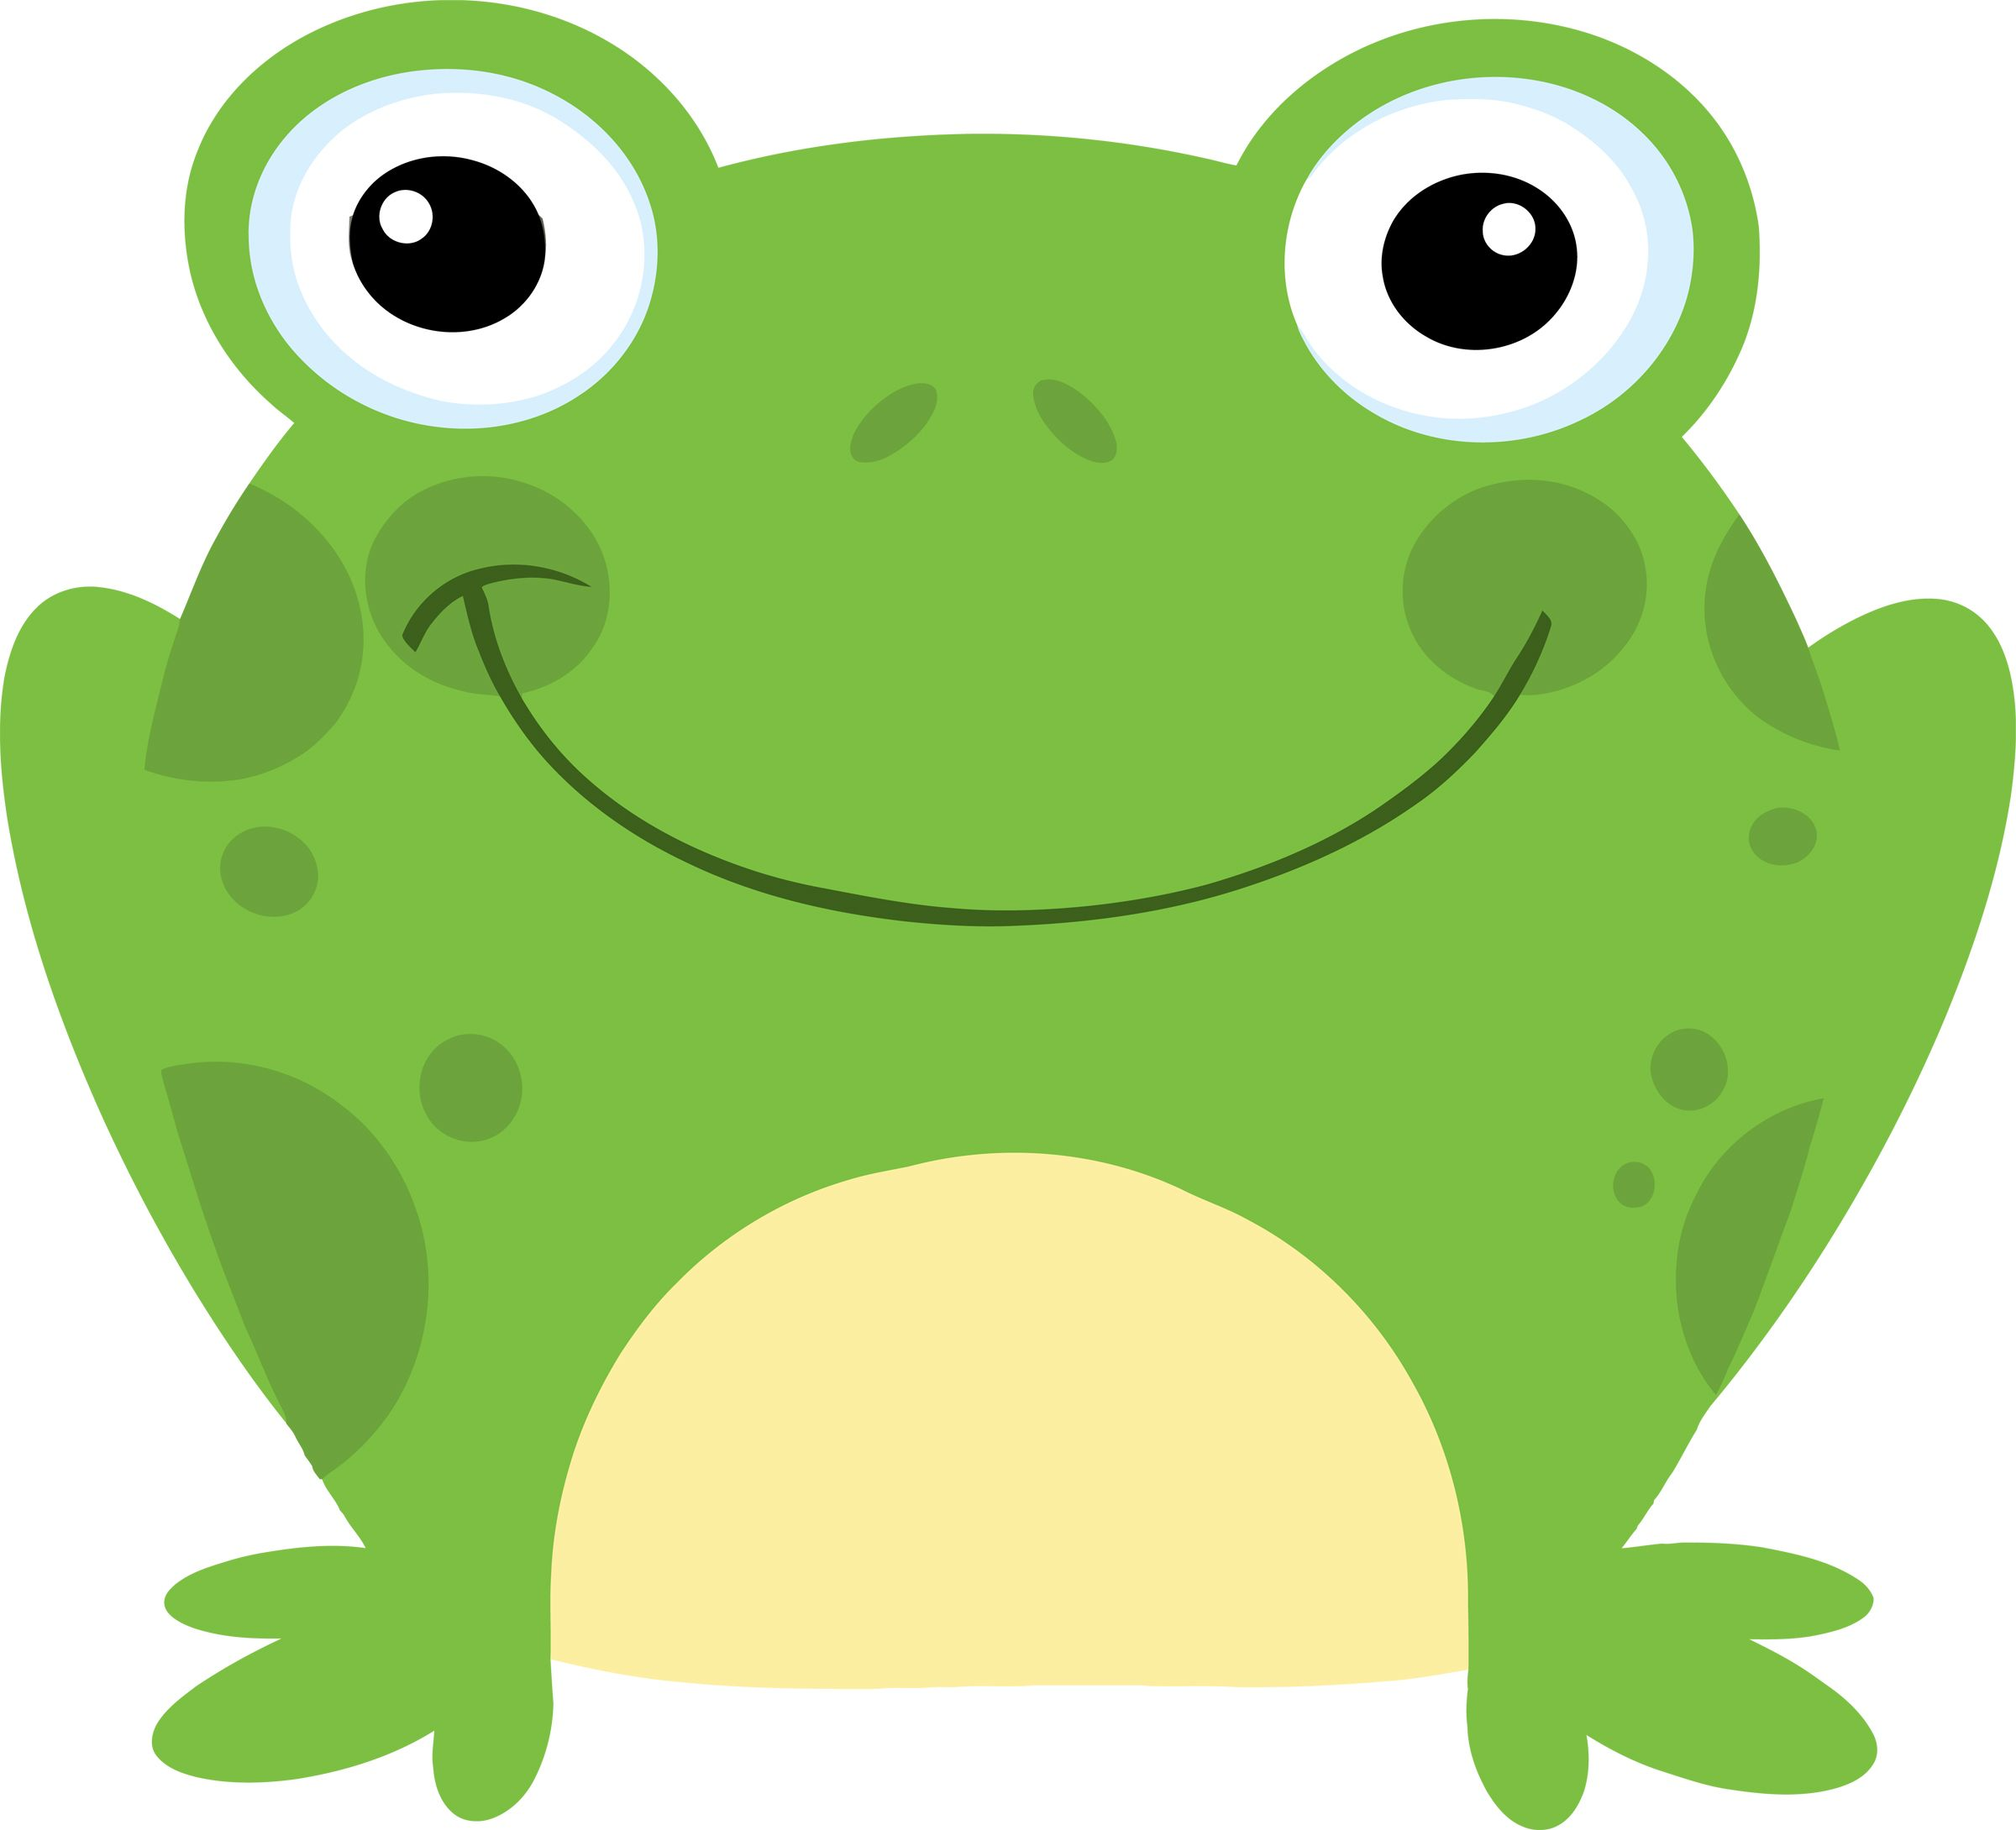 Pin by 💋💄KARIS💄💋 on dibujos | Pinterest | Frogs, Green frog and ...